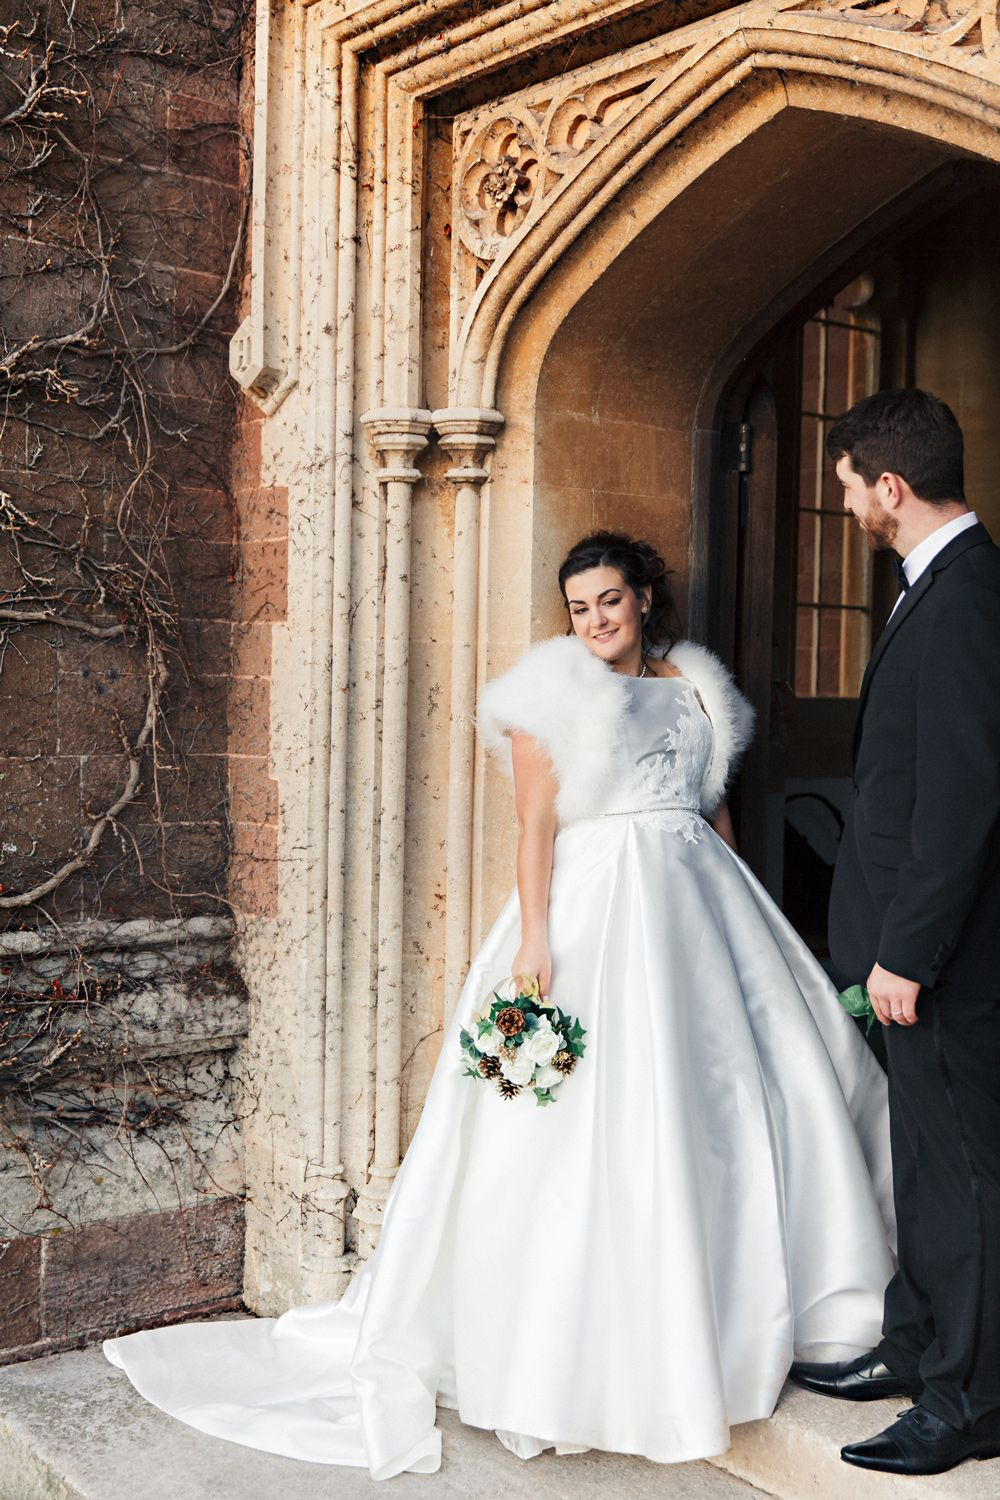 Wedding inspiration for an elegant black tie wedding at st audries